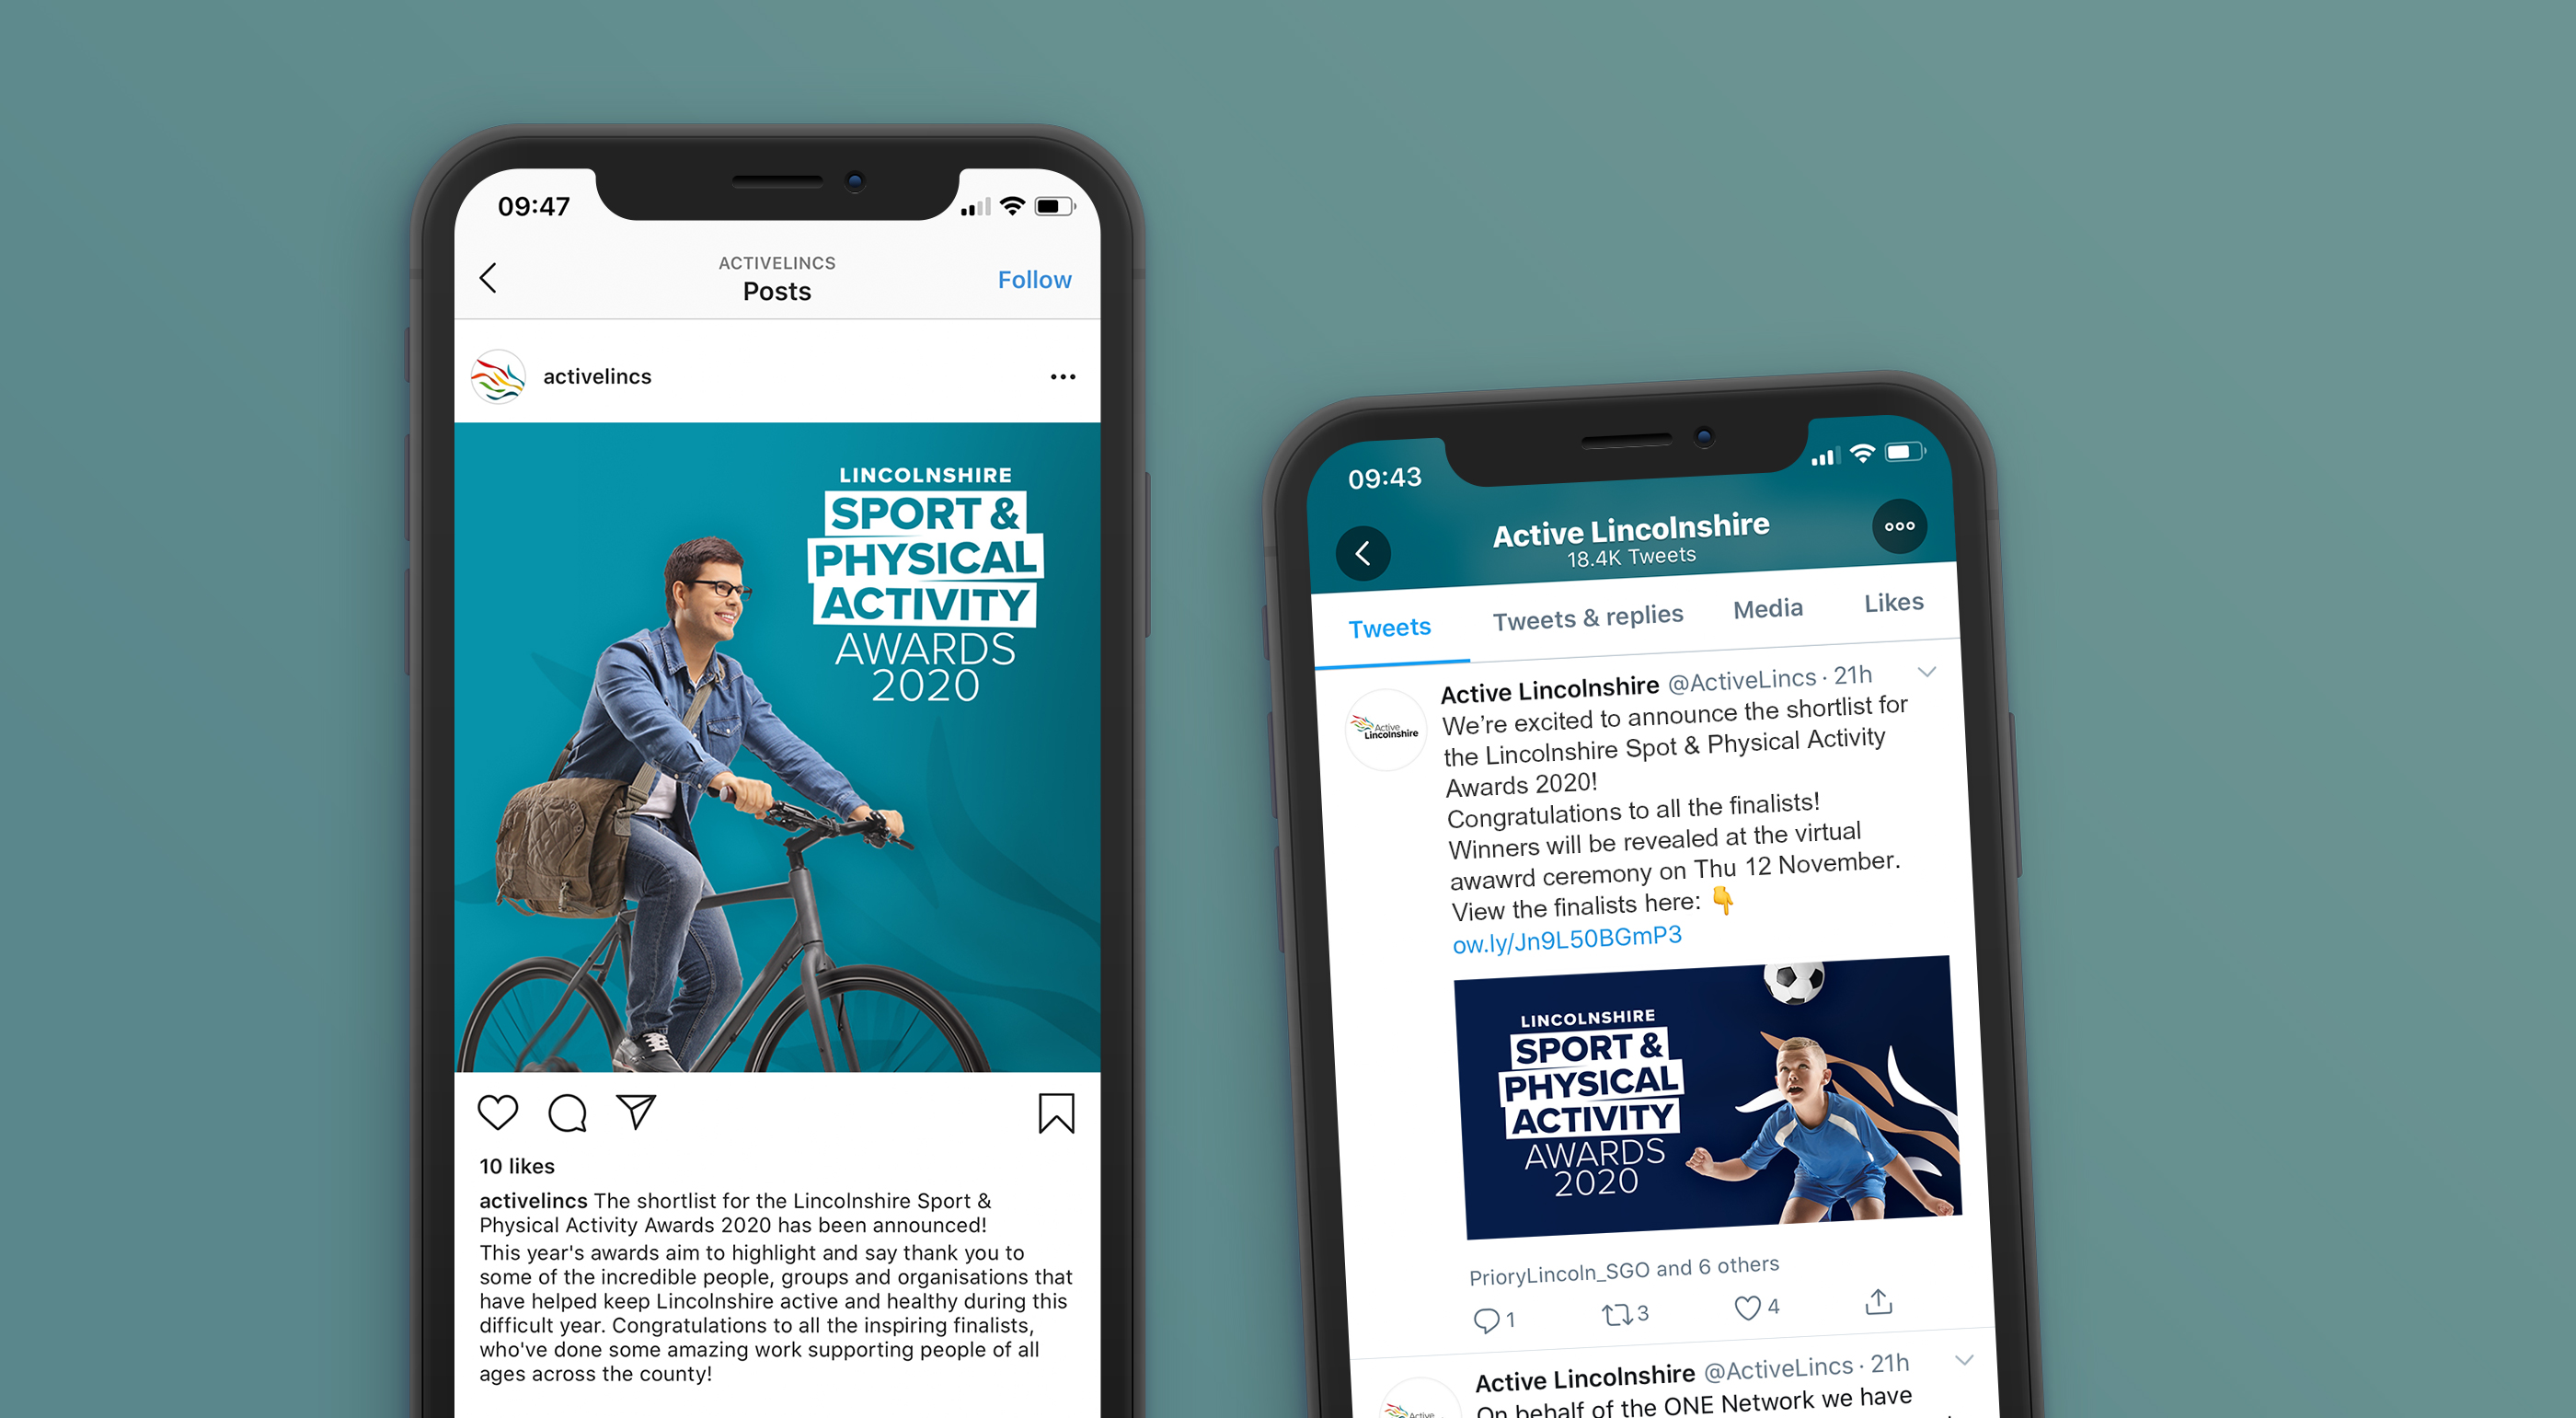 Active lincolnshire sports awards social media template